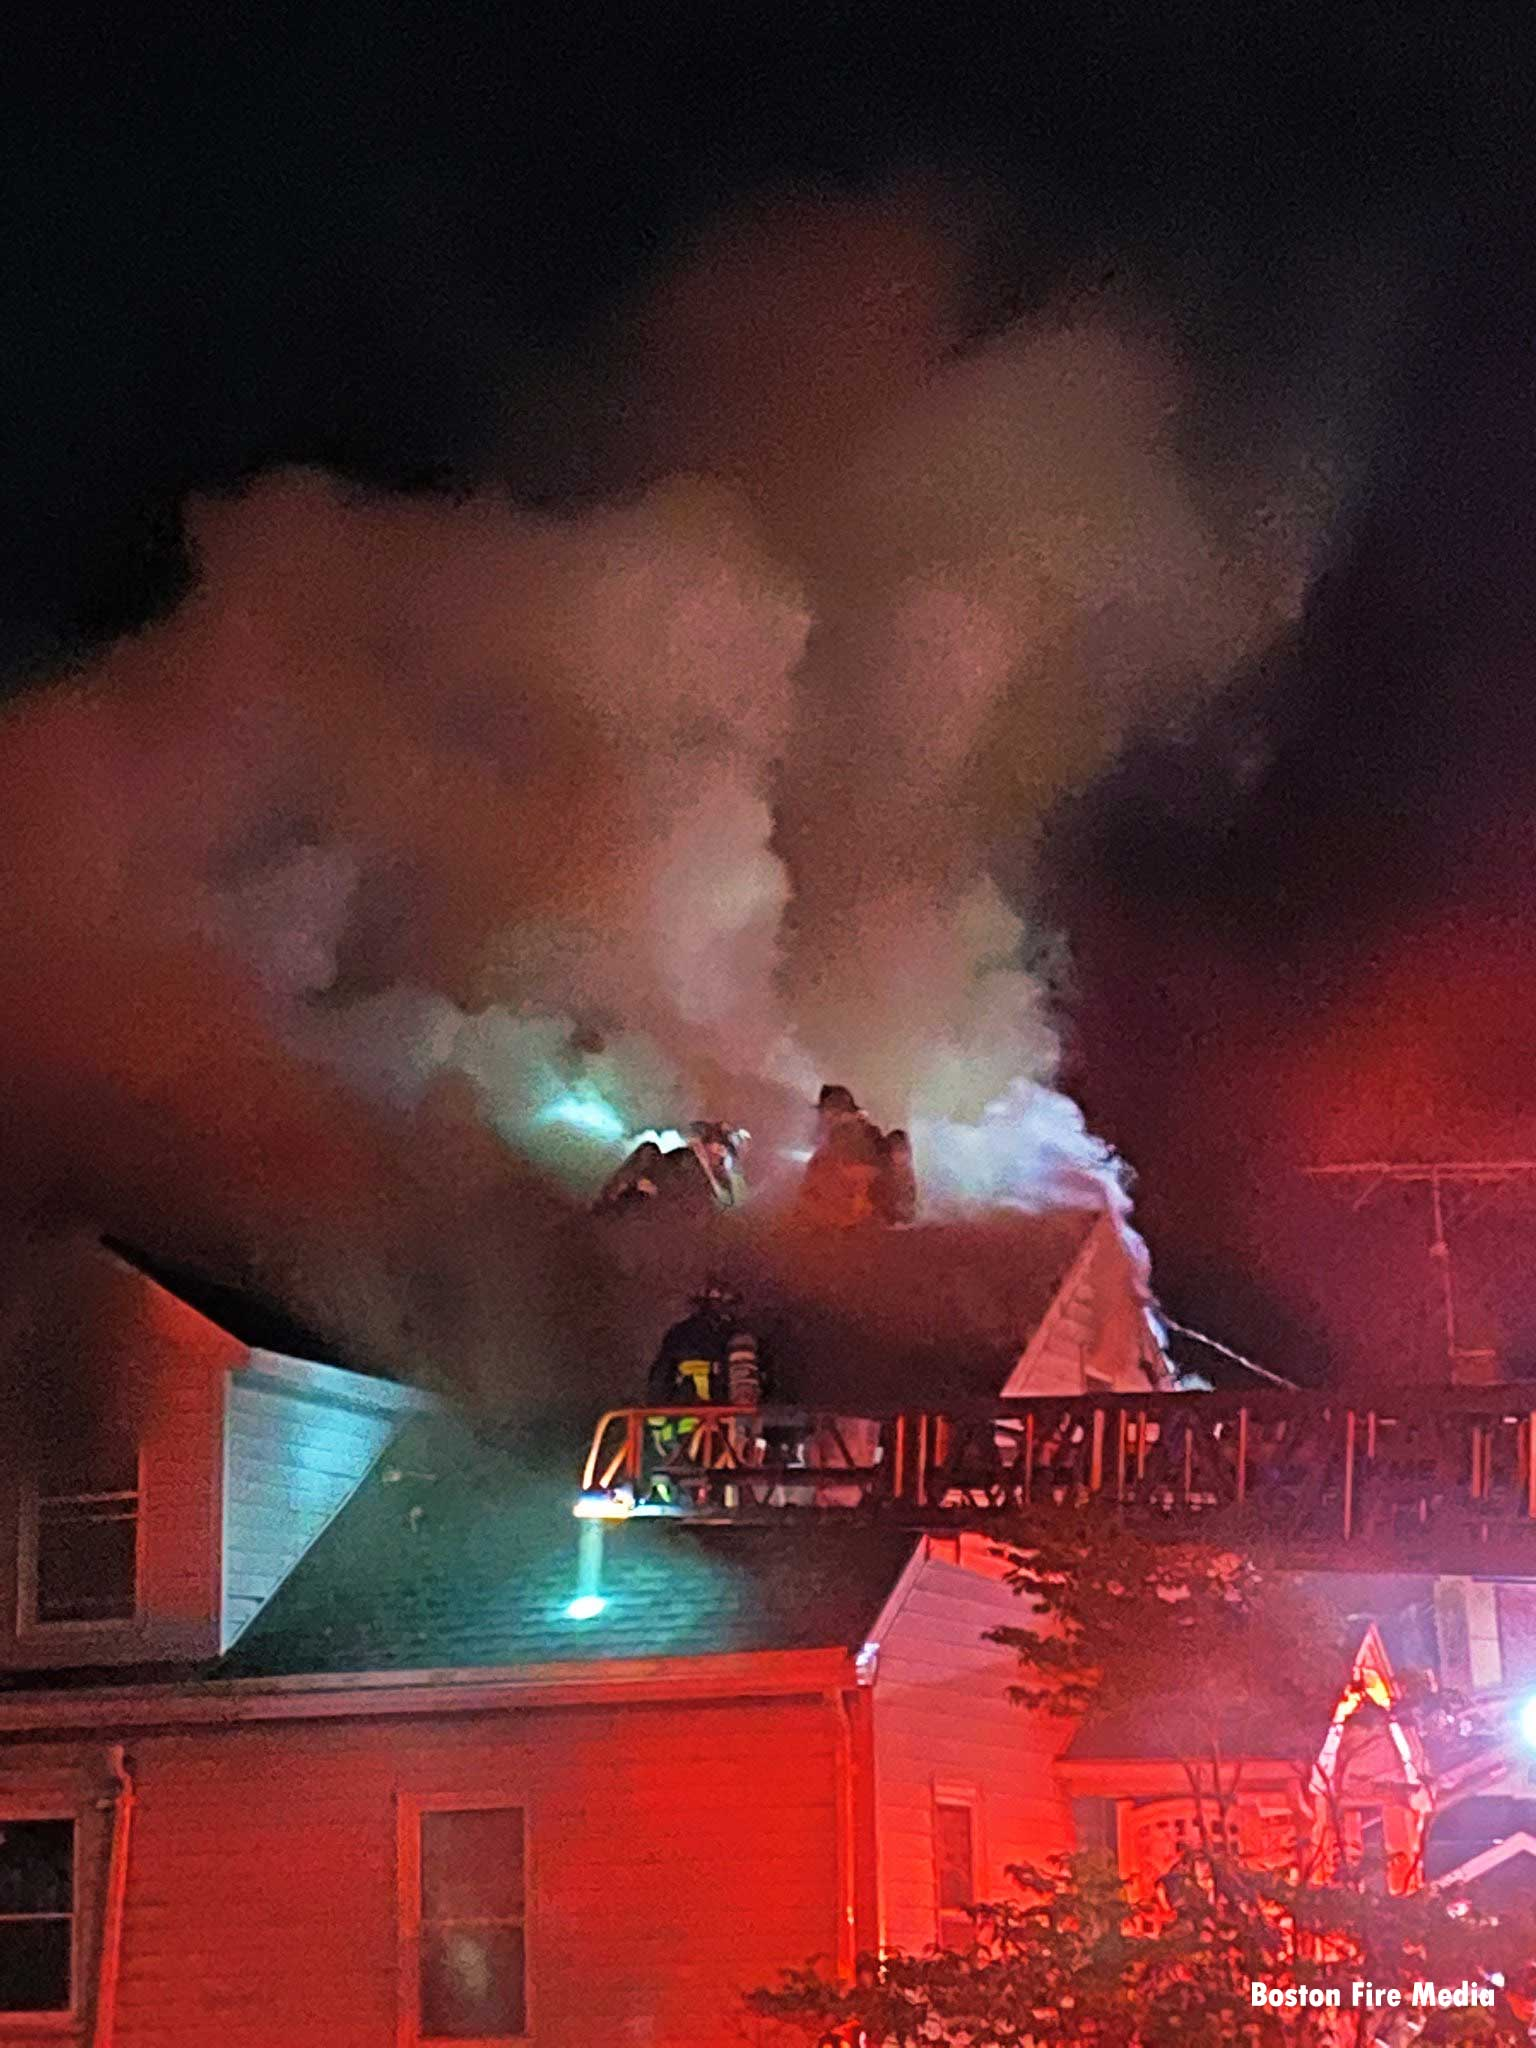 Aerial ladder and Boston firefighters on roof